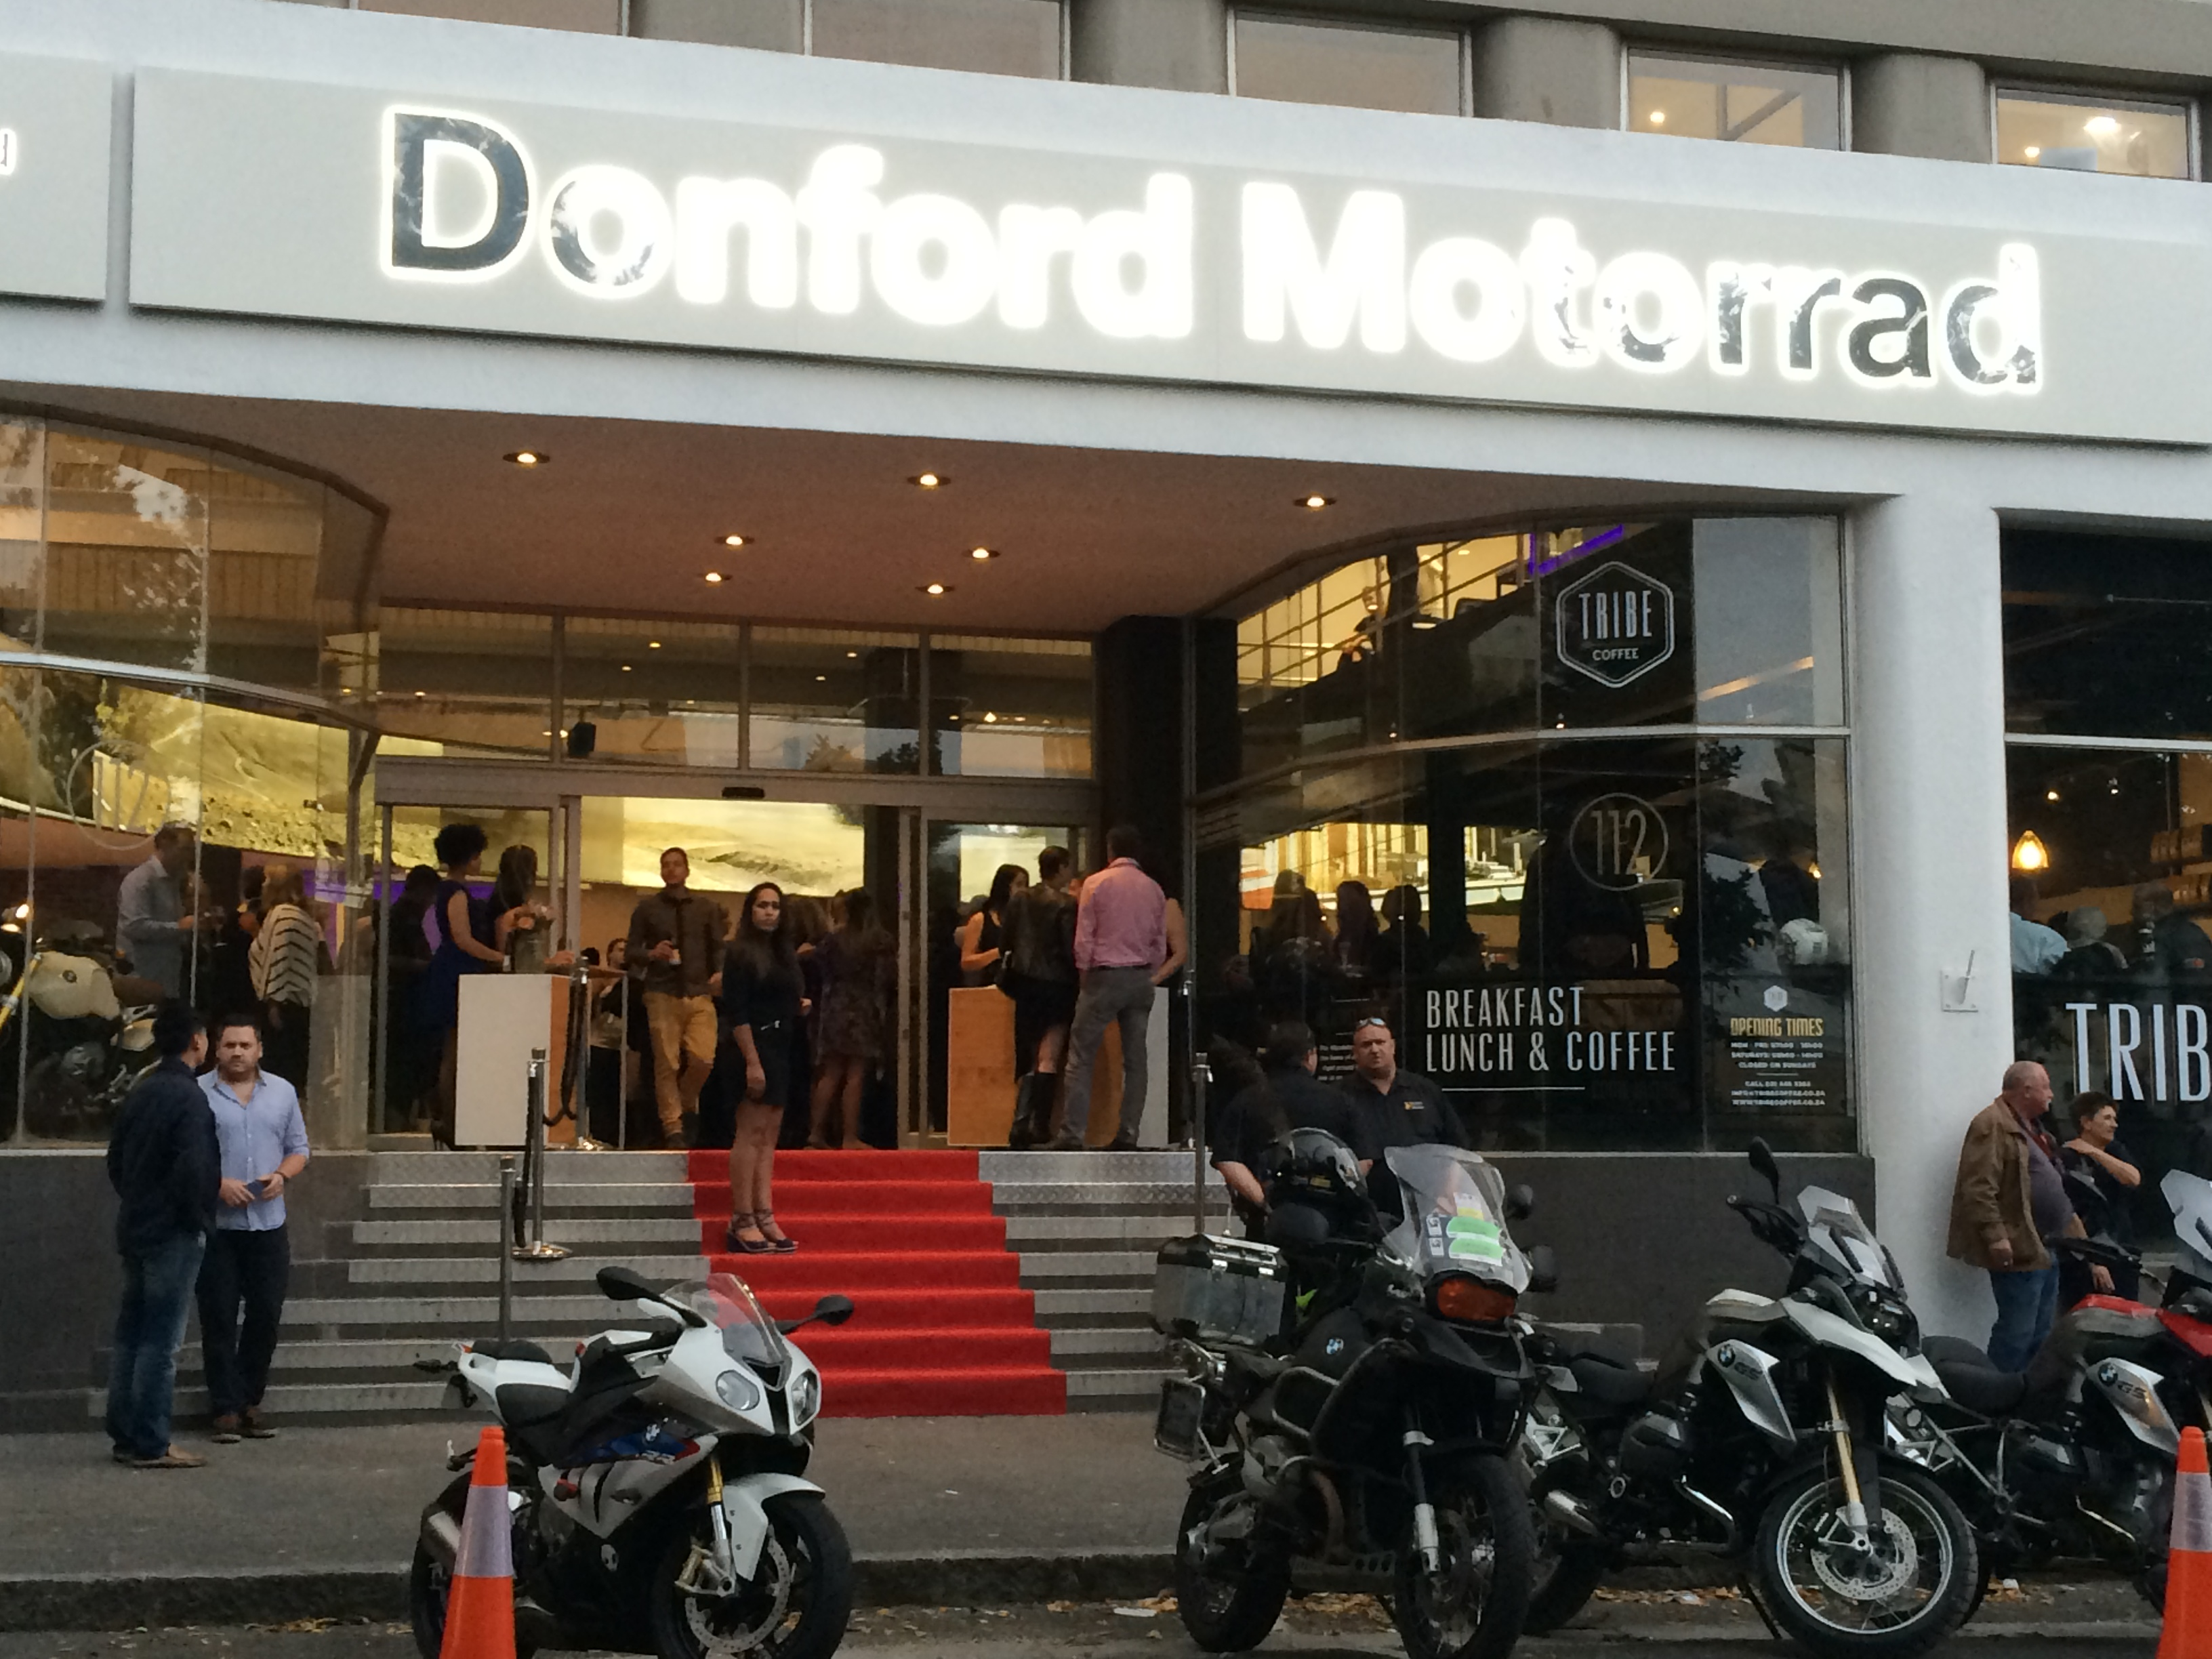 Donford Bmw Motorrad Opens Flagship Lifestyle Showroom In Cape Town